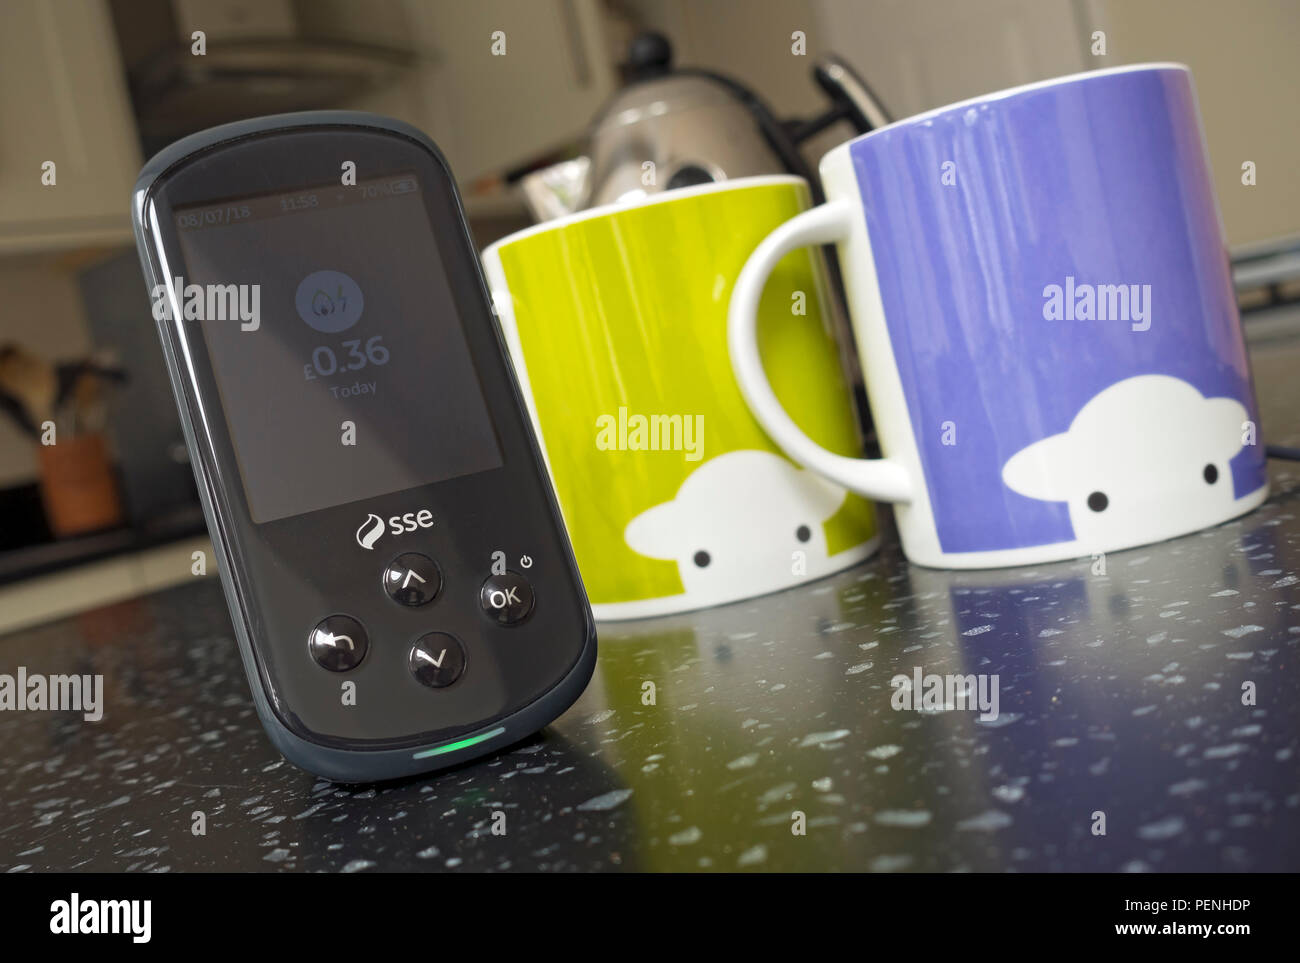 SSE smart meter on kitchen worktop England UK United Kingdom GB Great Britain - Stock Image